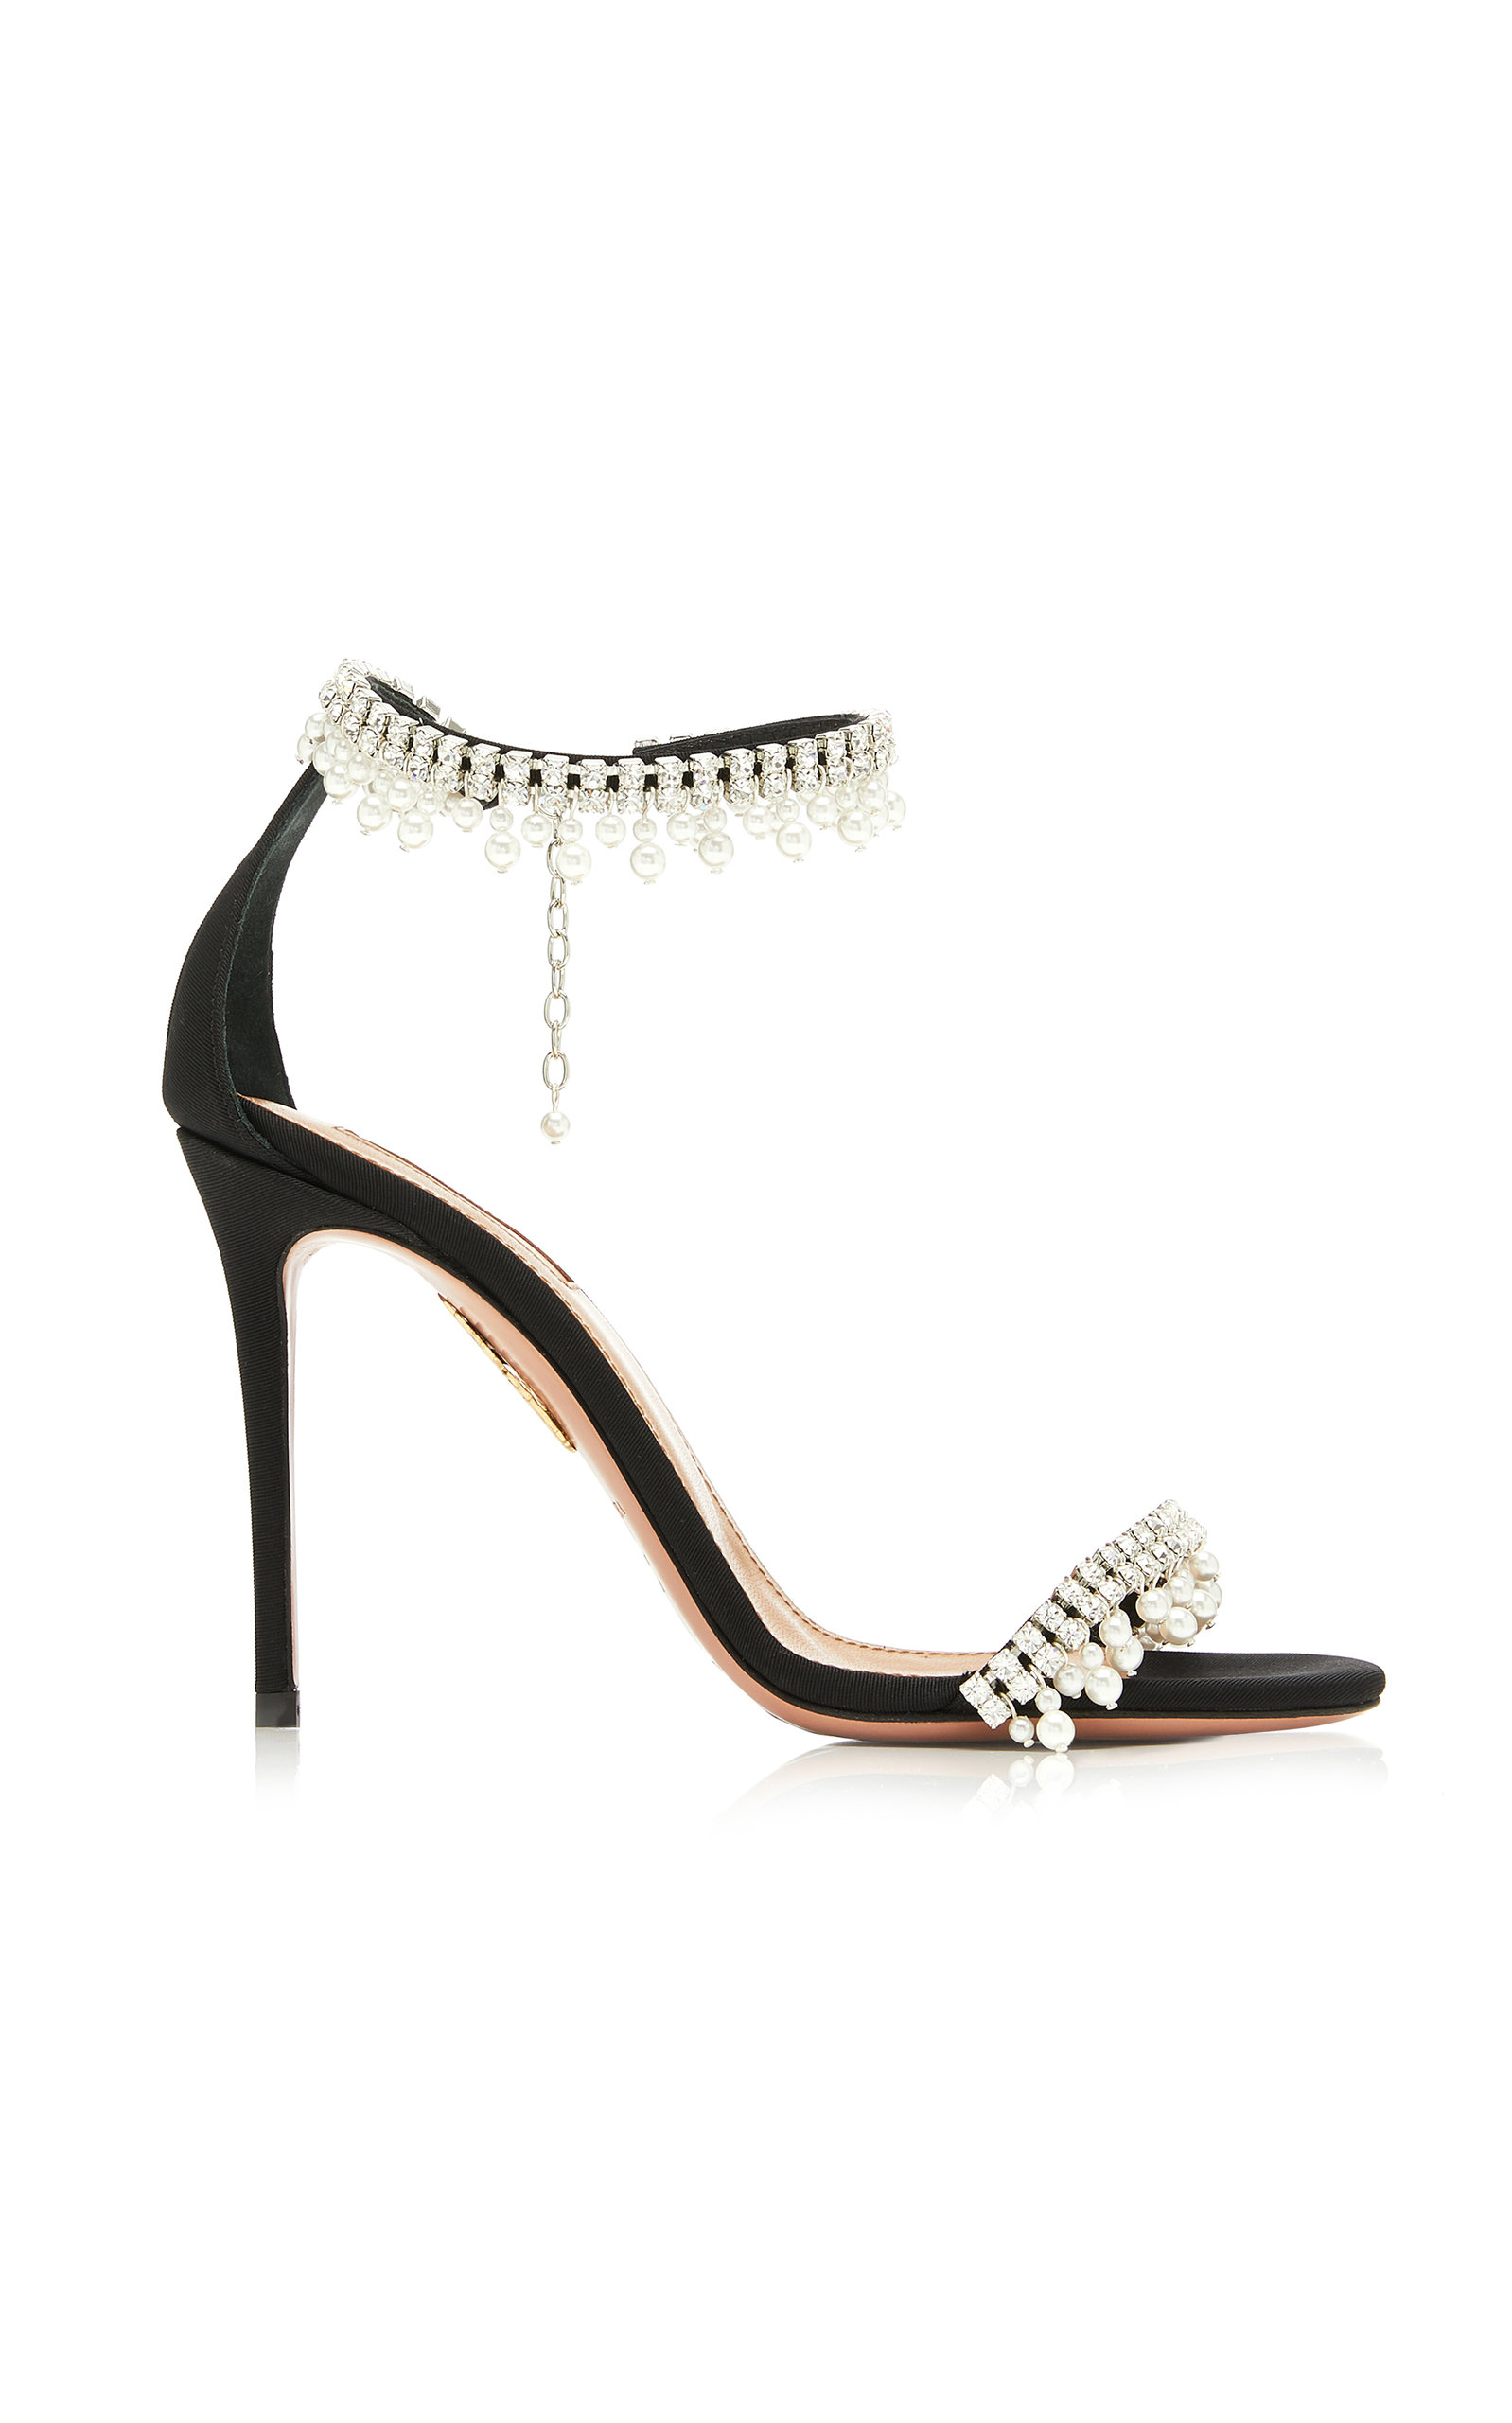 Aquazzura Sandals Exquisite Embellished Leather Sandals